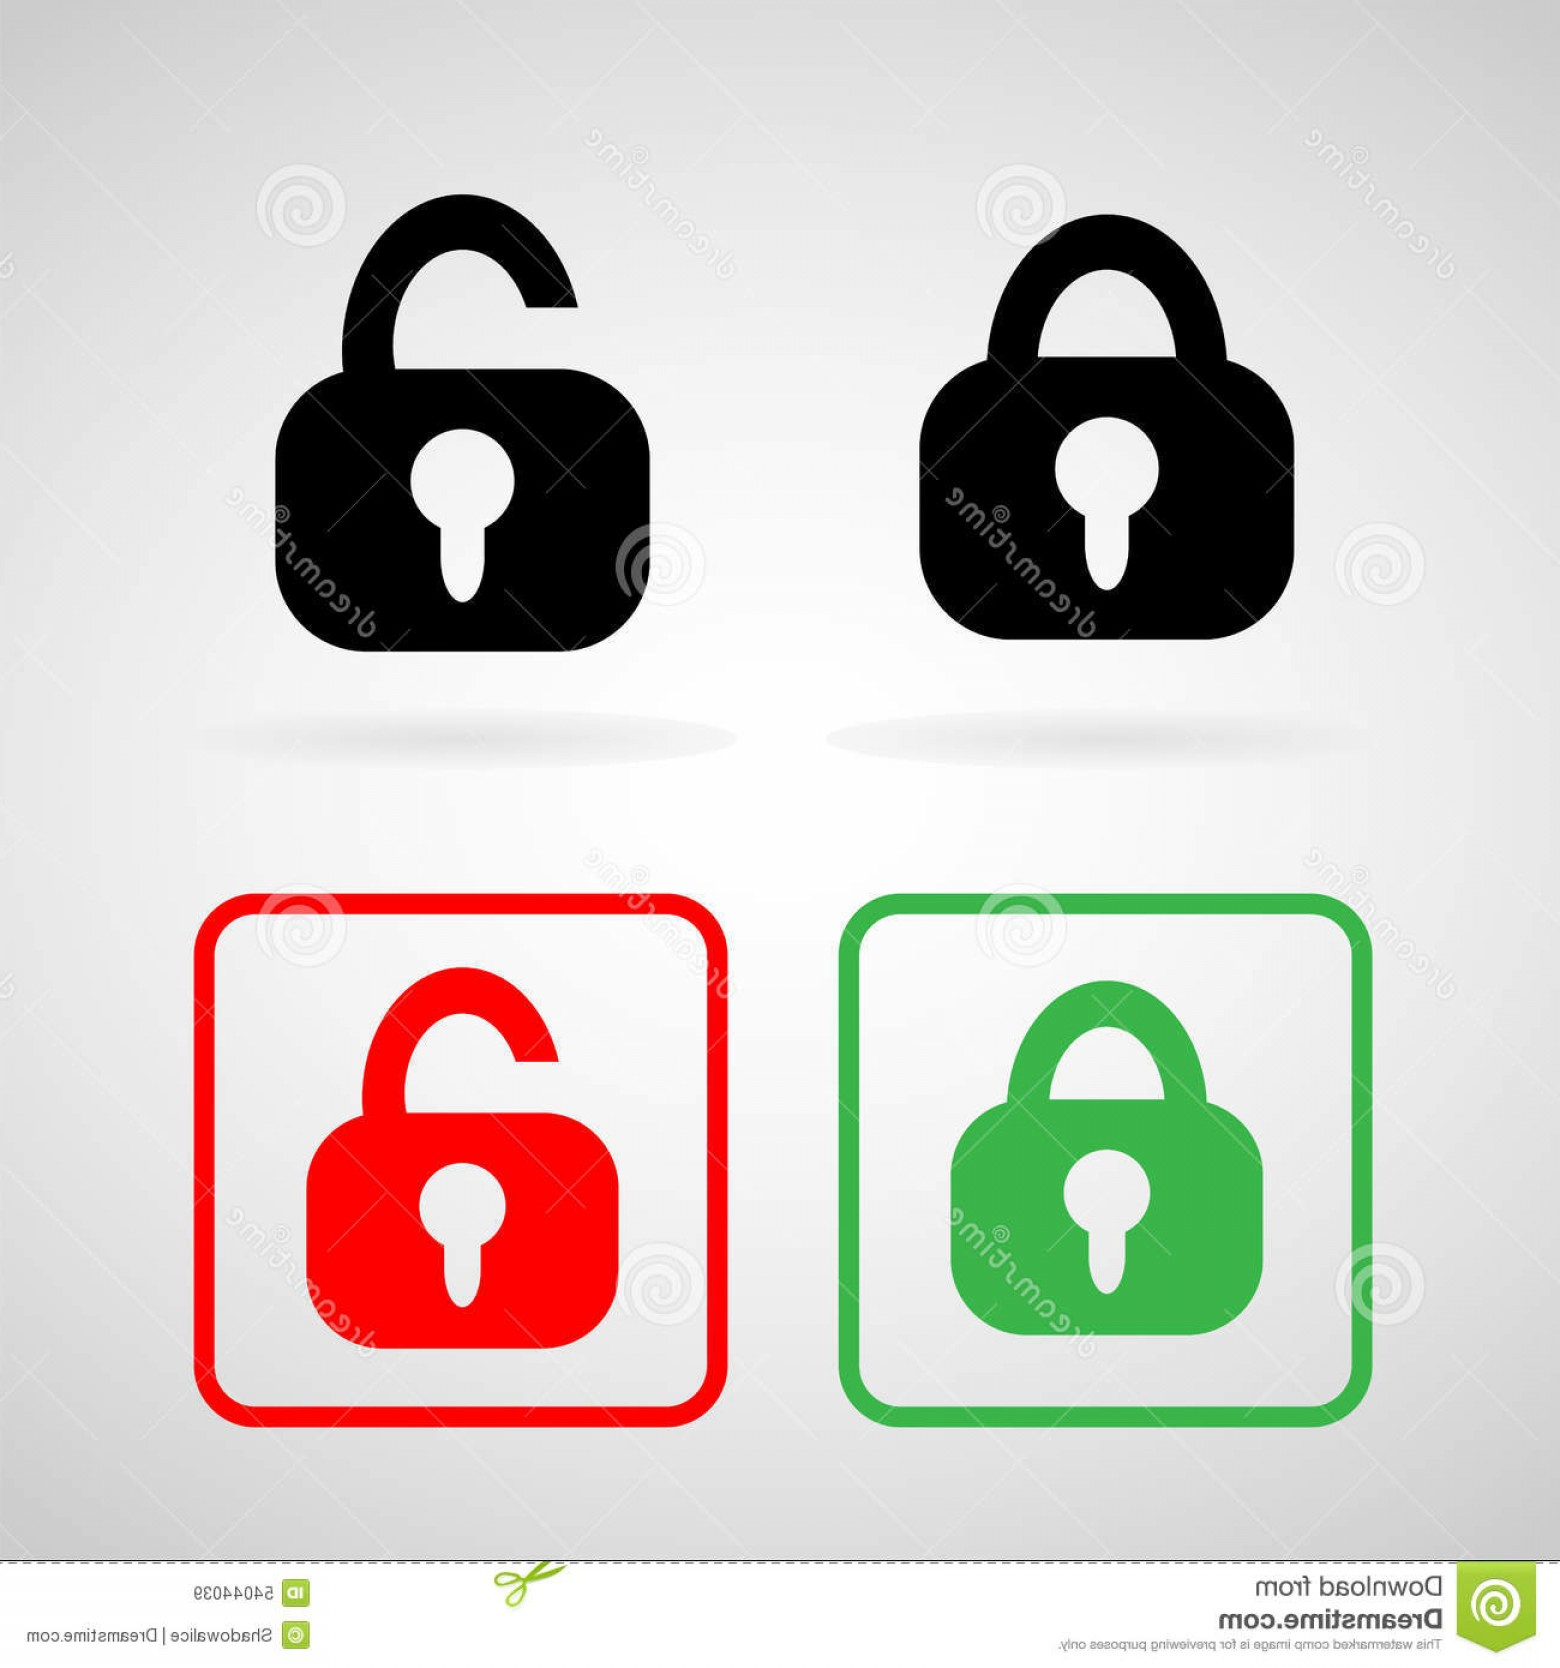 Lock Unlock Icon Vector: Stock Illustration Lock Unlock Icons Set Great Any Use Vector Eps Image